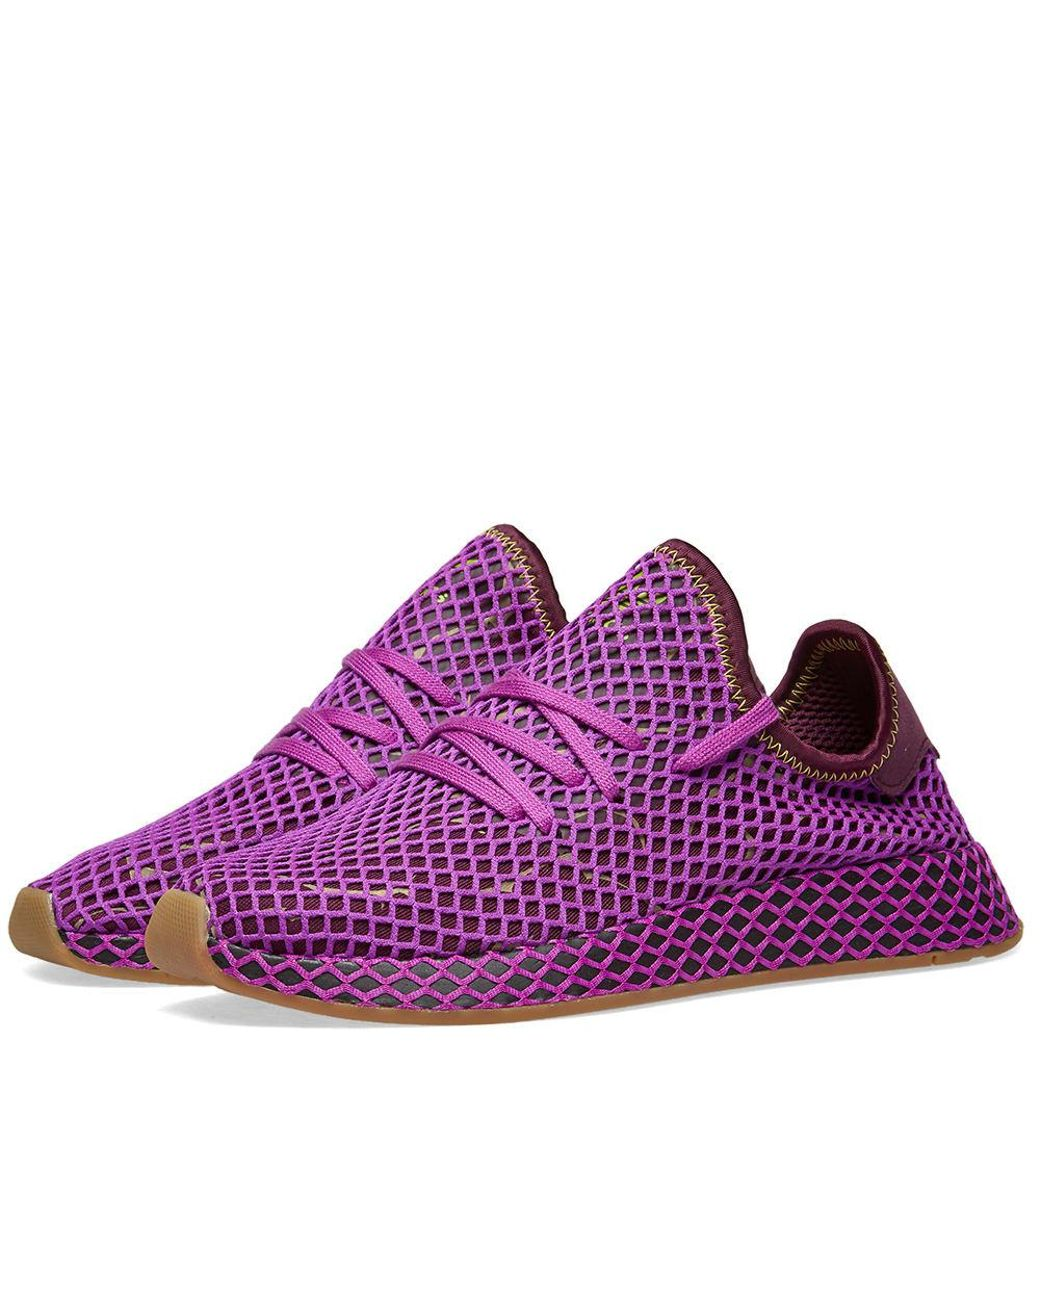 0f3ff1f2b712b Lyst - adidas X Dragon Ball Z Deerupt Runner  son Gohan  in Purple ...